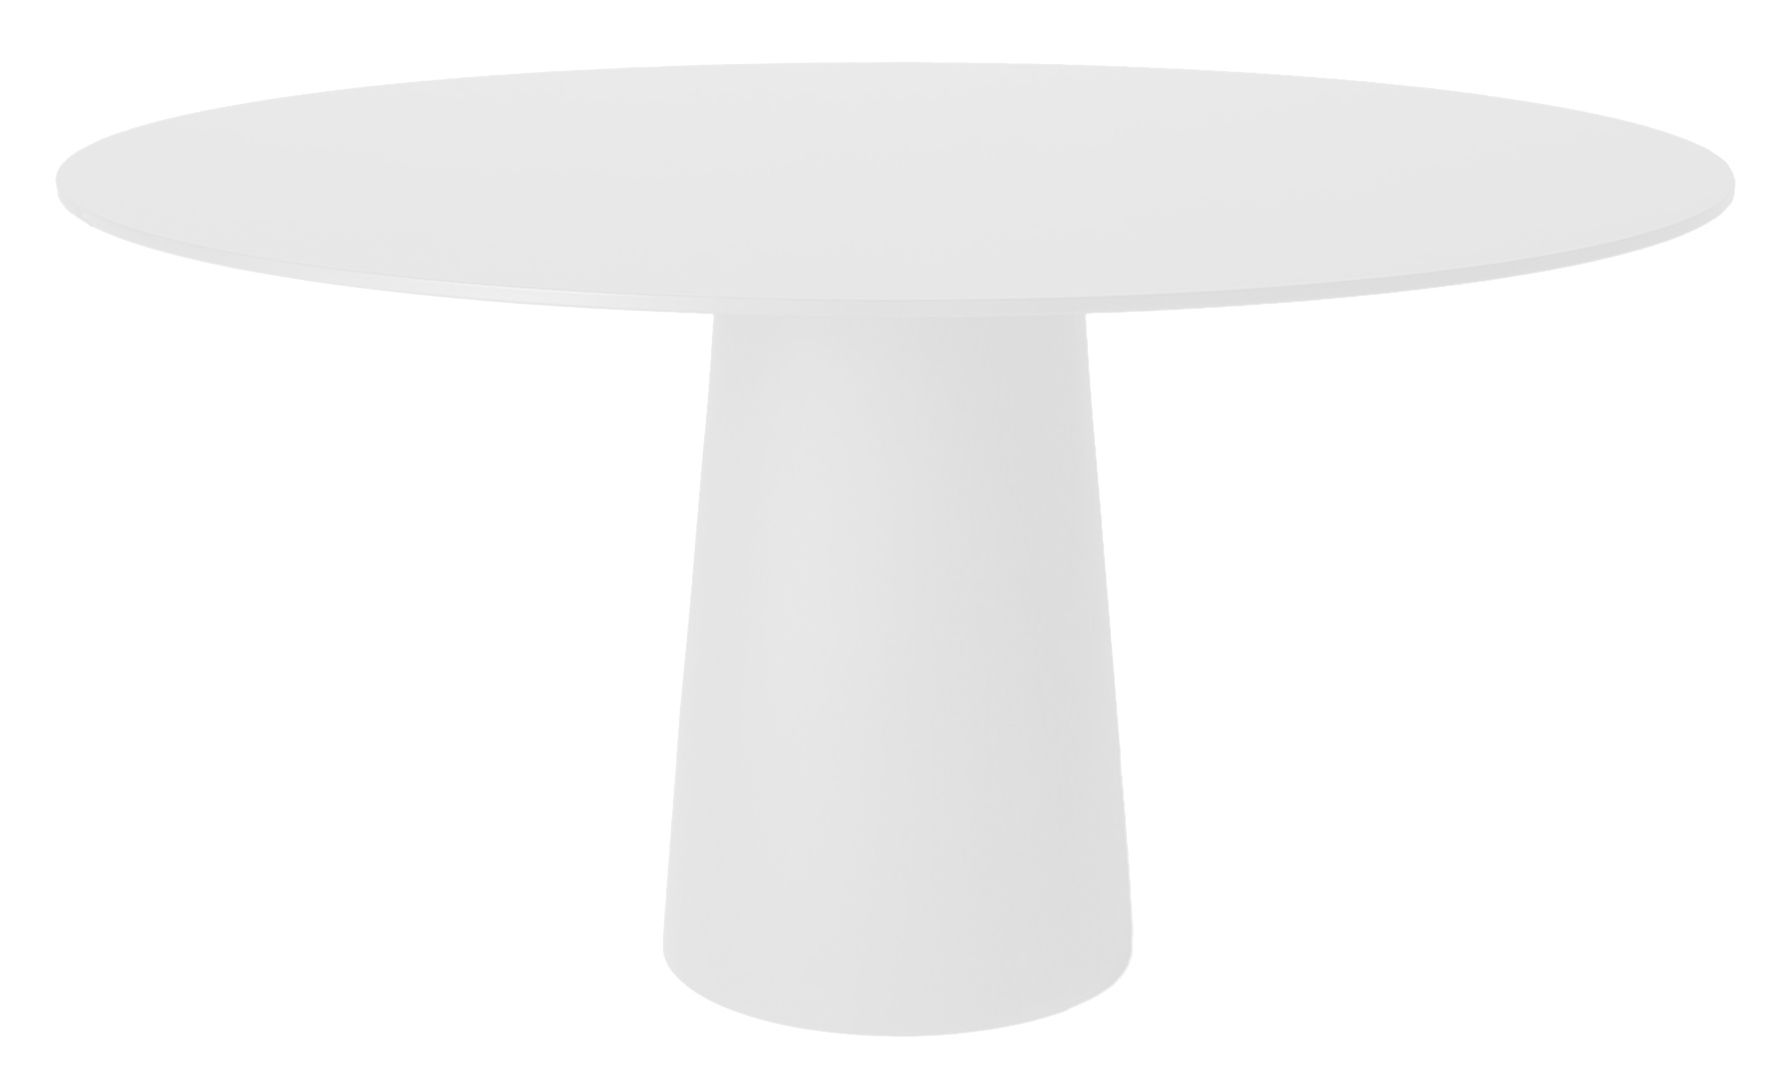 Outdoor - Garden Tables - / Pied pour table Container Table accessory - Ø 43 x H 70 cm - For top Ø 140 cm by Moooi - White foot Ø 43 cm - Polypropylene